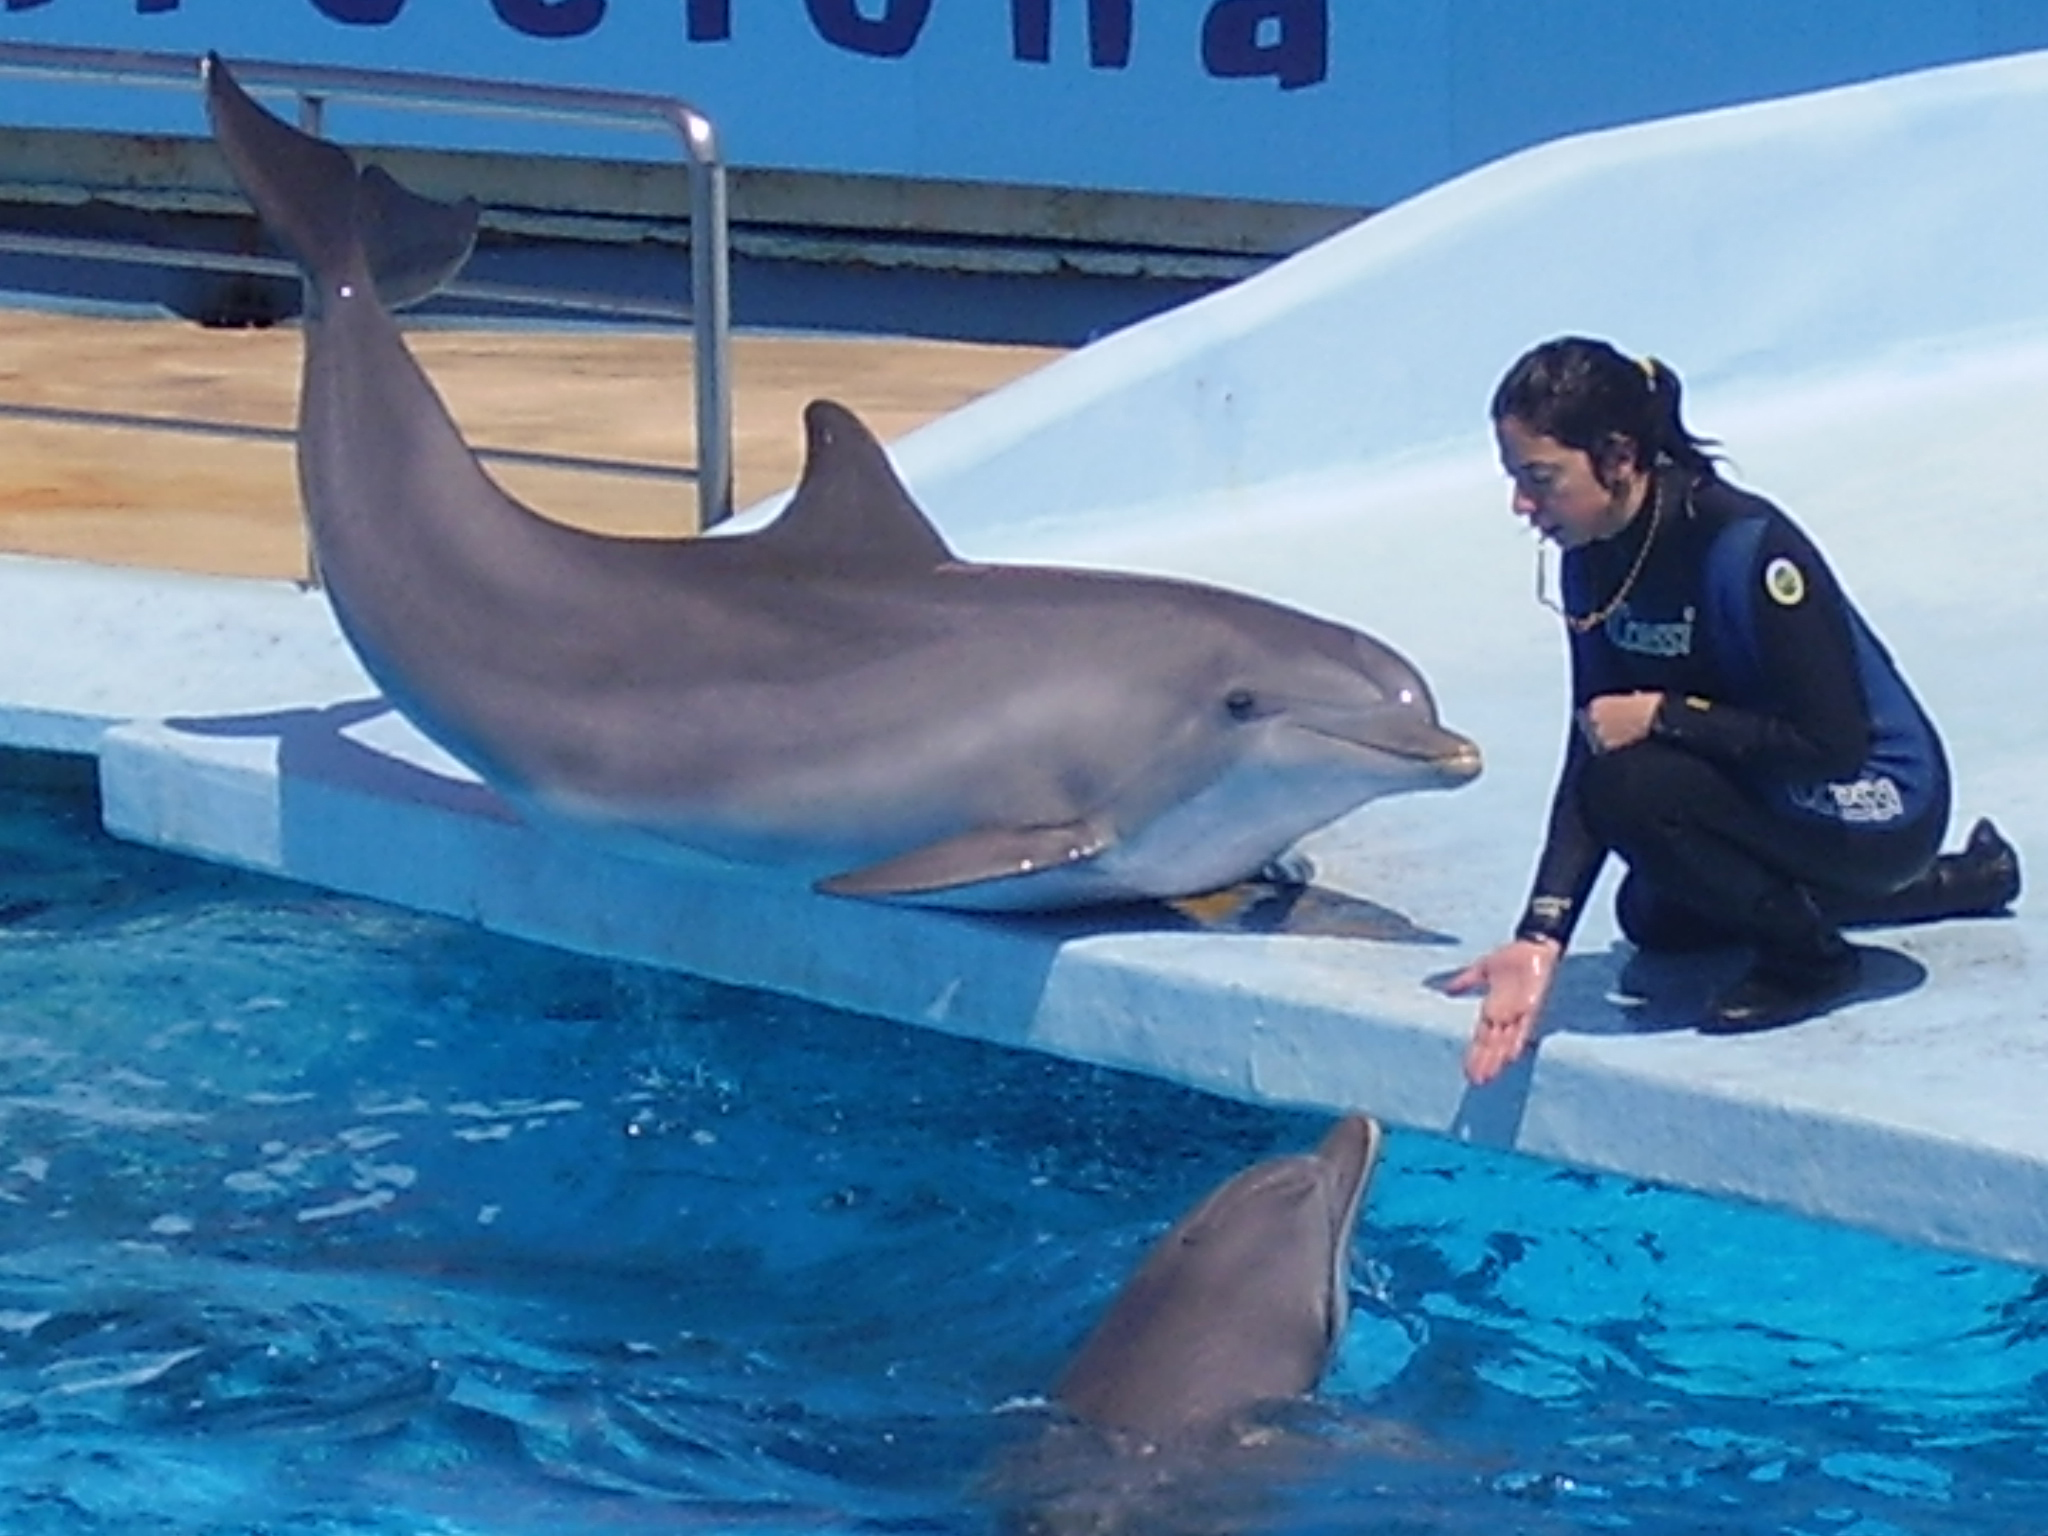 File:Dolphin and trainer 4.jpg - Wikimedia Commons